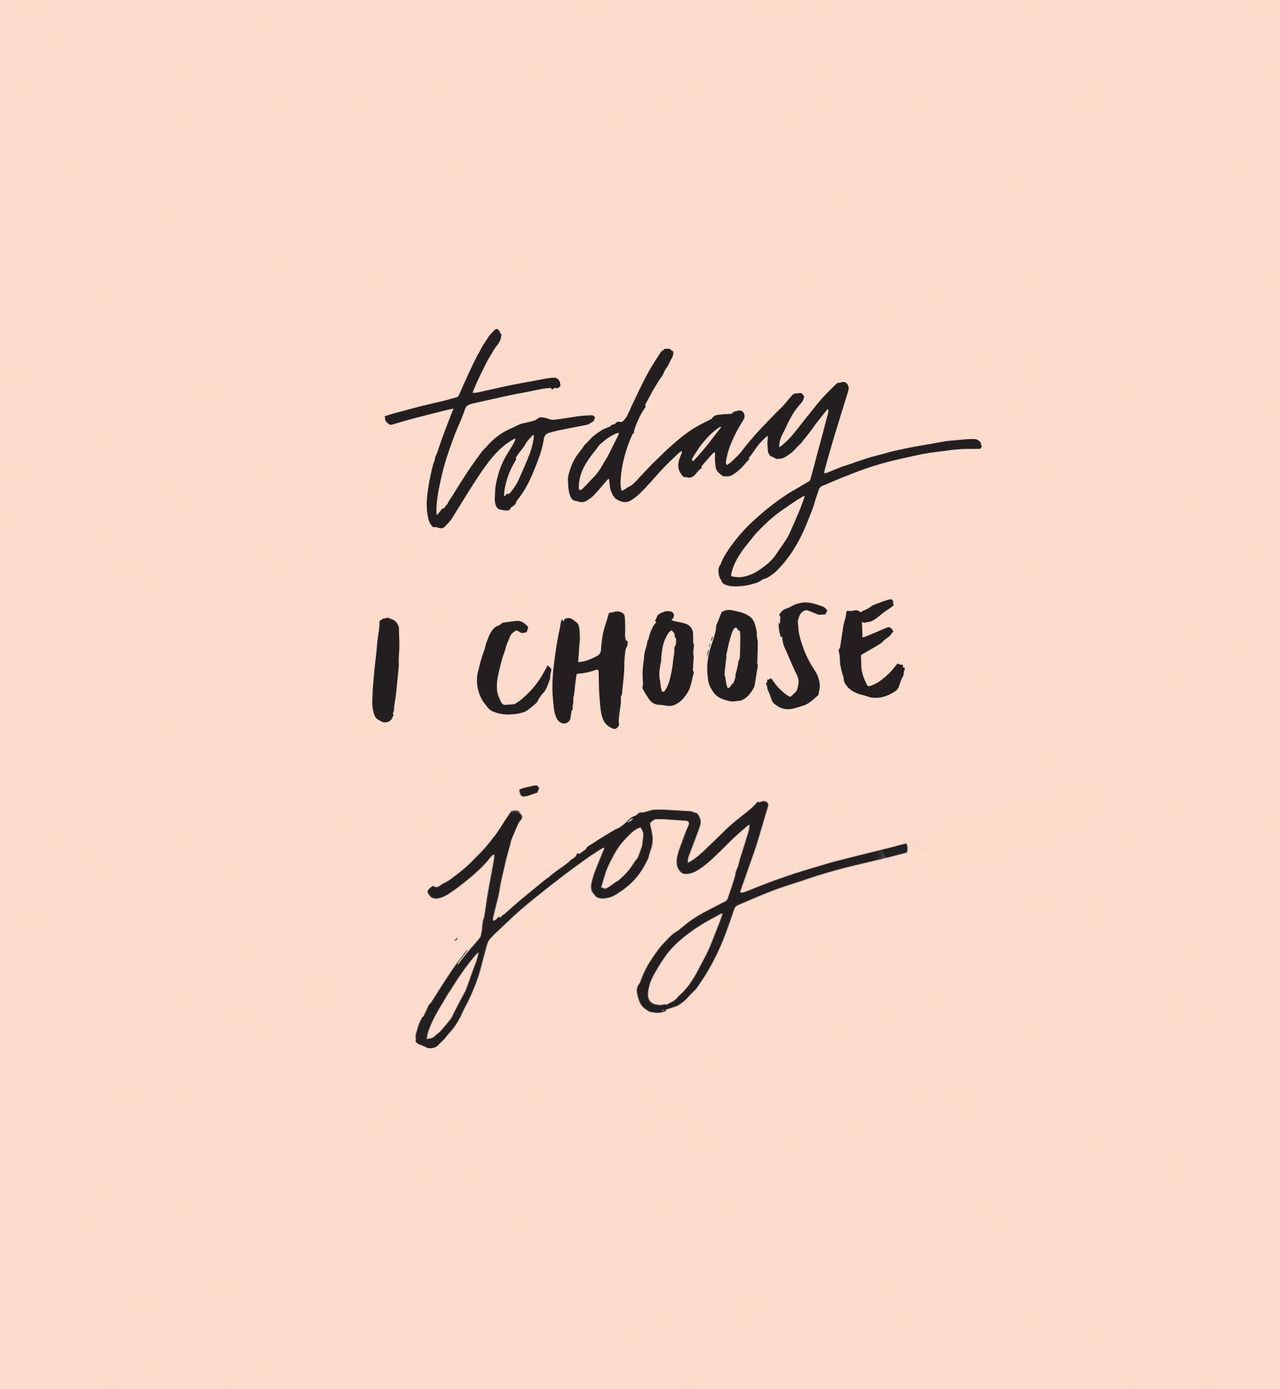 Today I Choose Joy. Quotes About HappinessQuotes ...